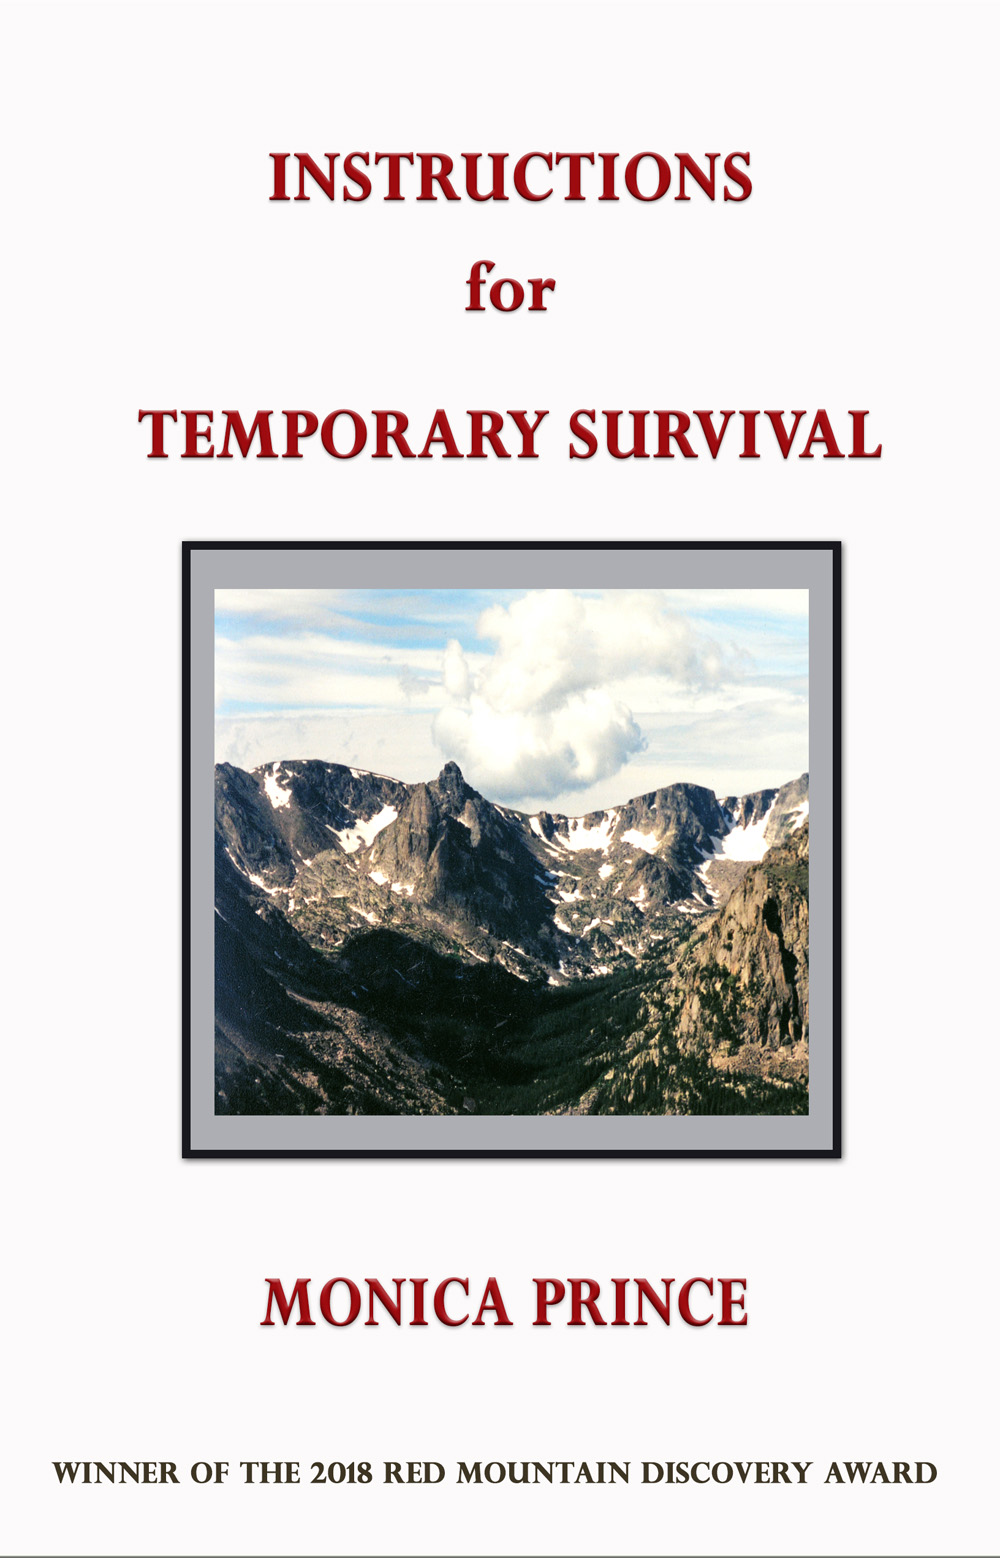 Instructions for Temporary Survival